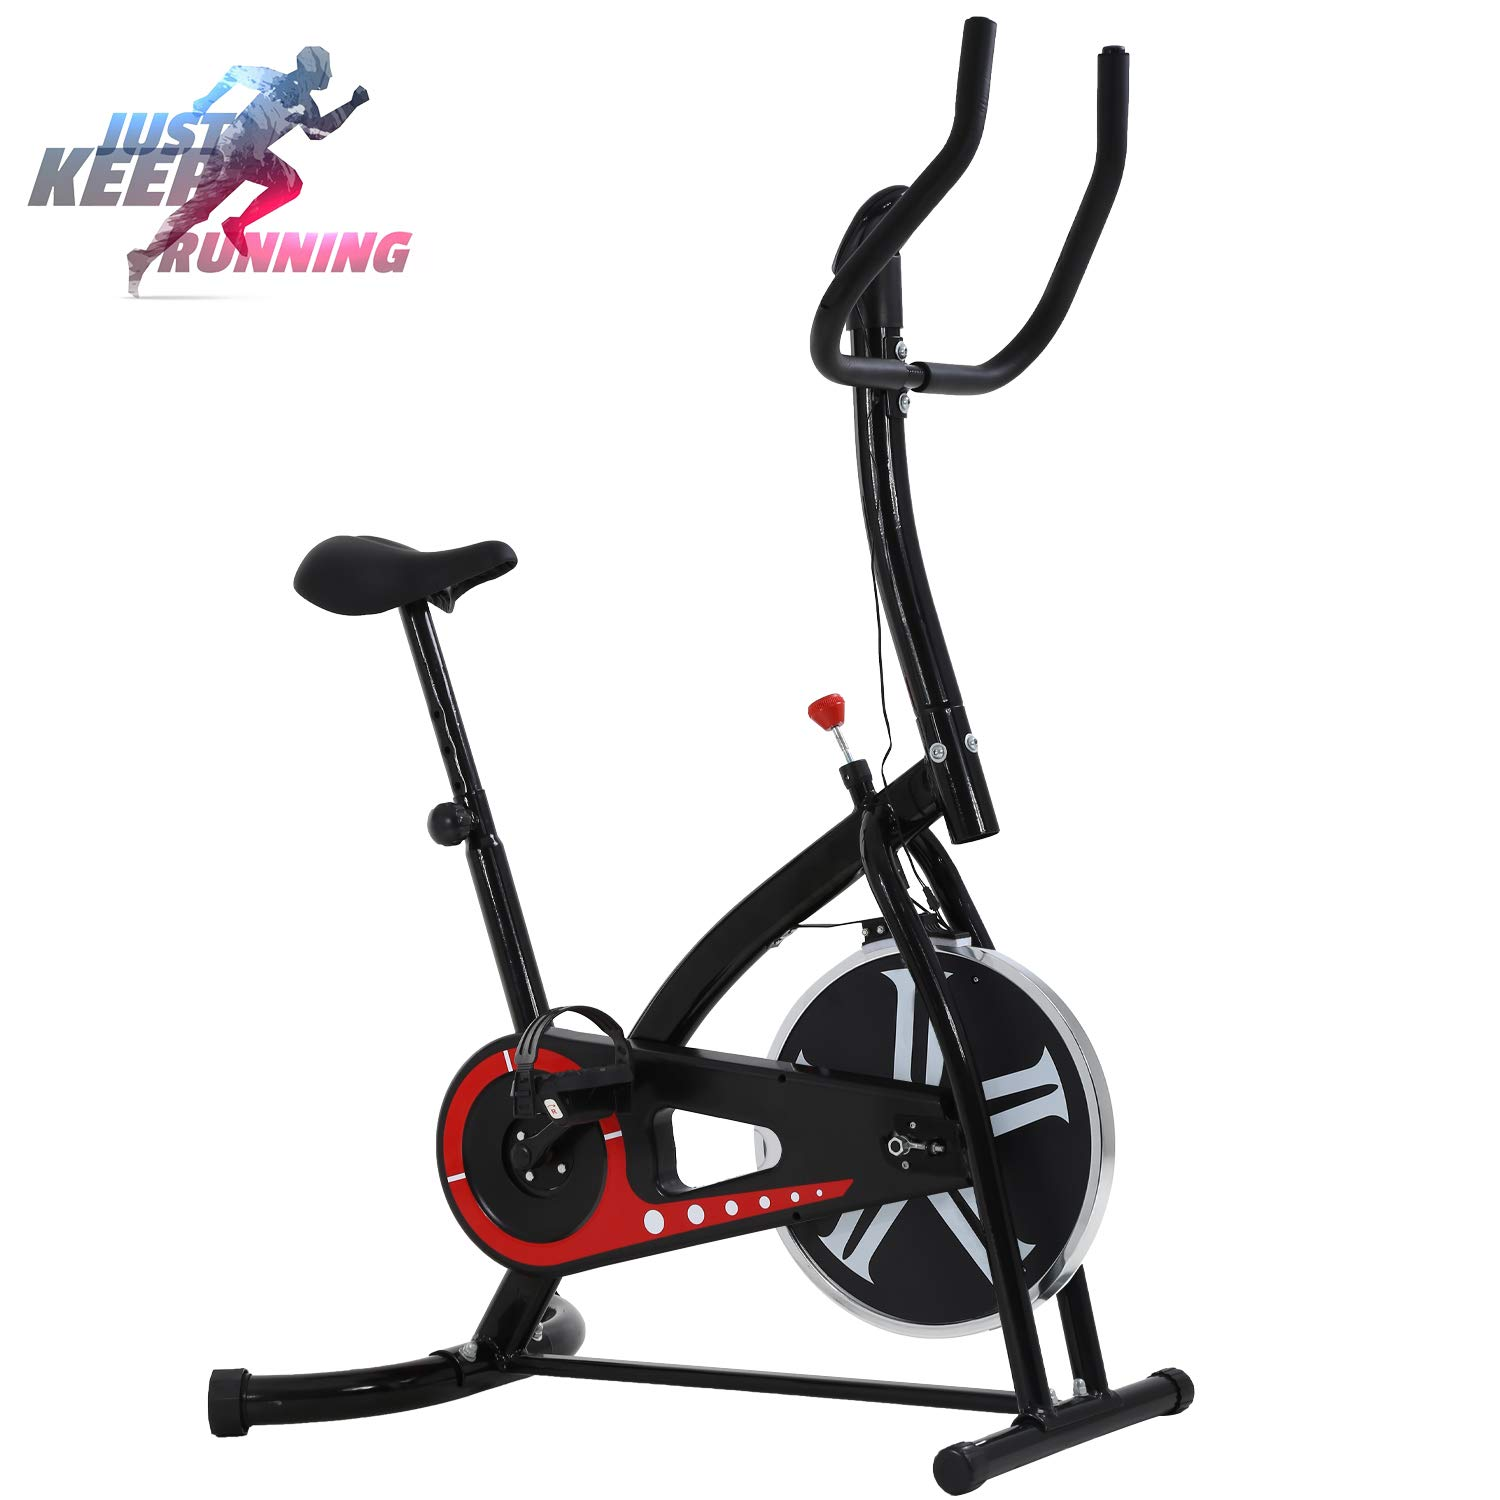 Fdw Exercise Bike Spin Bike Cycle Stationary Workout